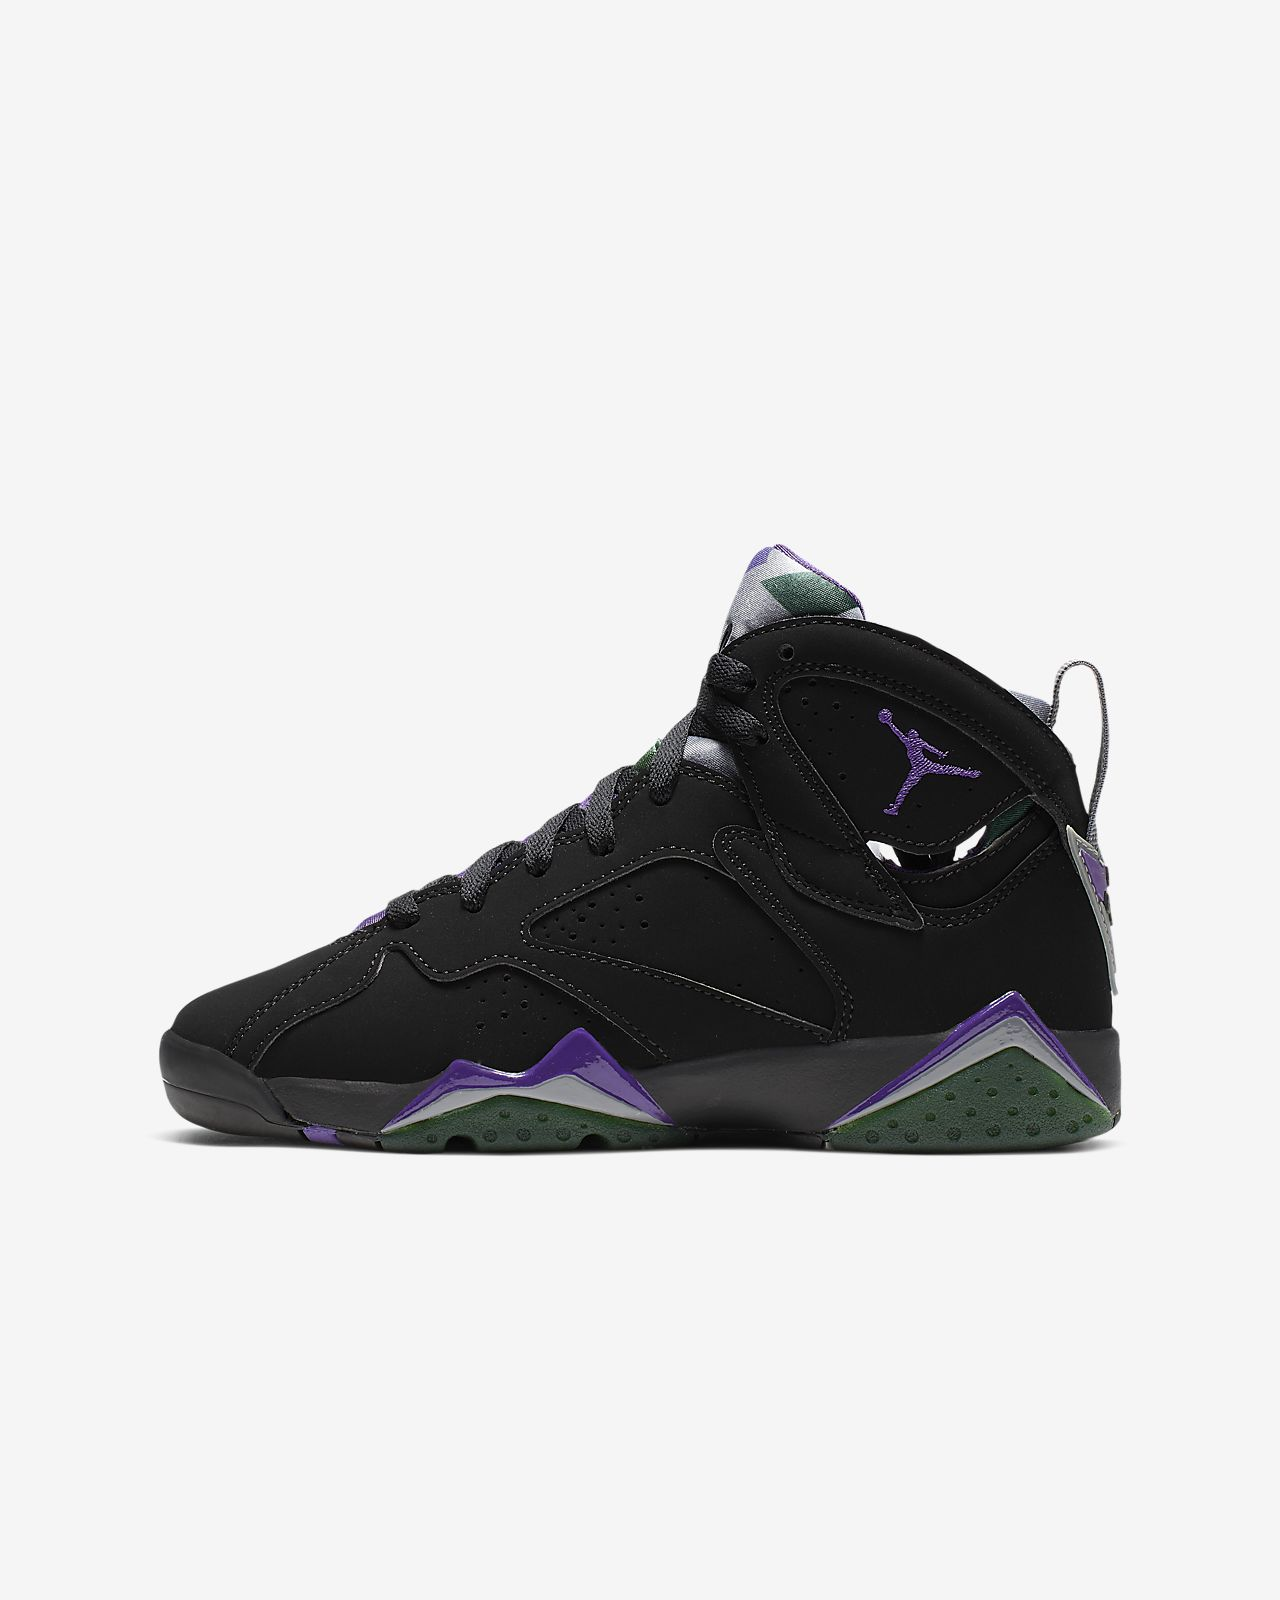 c8cdc715b7e Air Jordan 7 Retro (3.5y-7y) Big Kids' Shoe. Nike.com